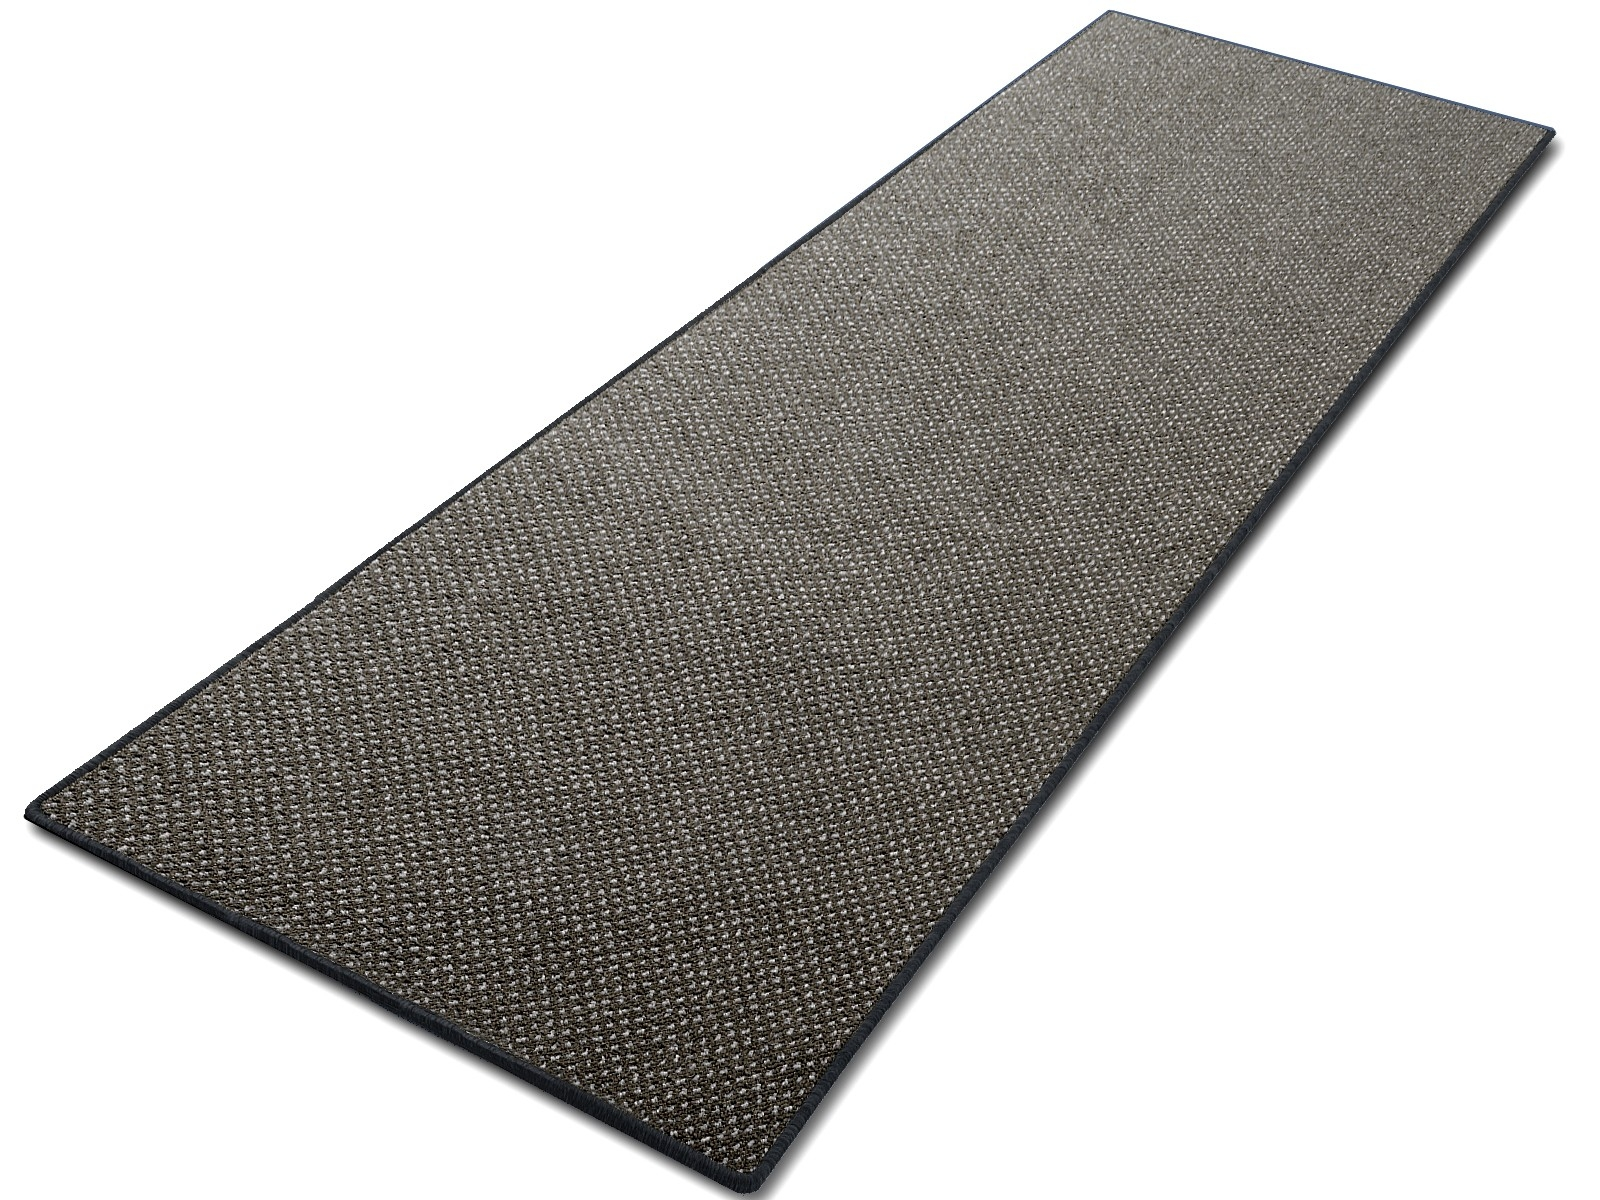 Classic Carpet Runner Rug Ponto Grey Pertaining To Rug Runners Grey (#6 of 20)